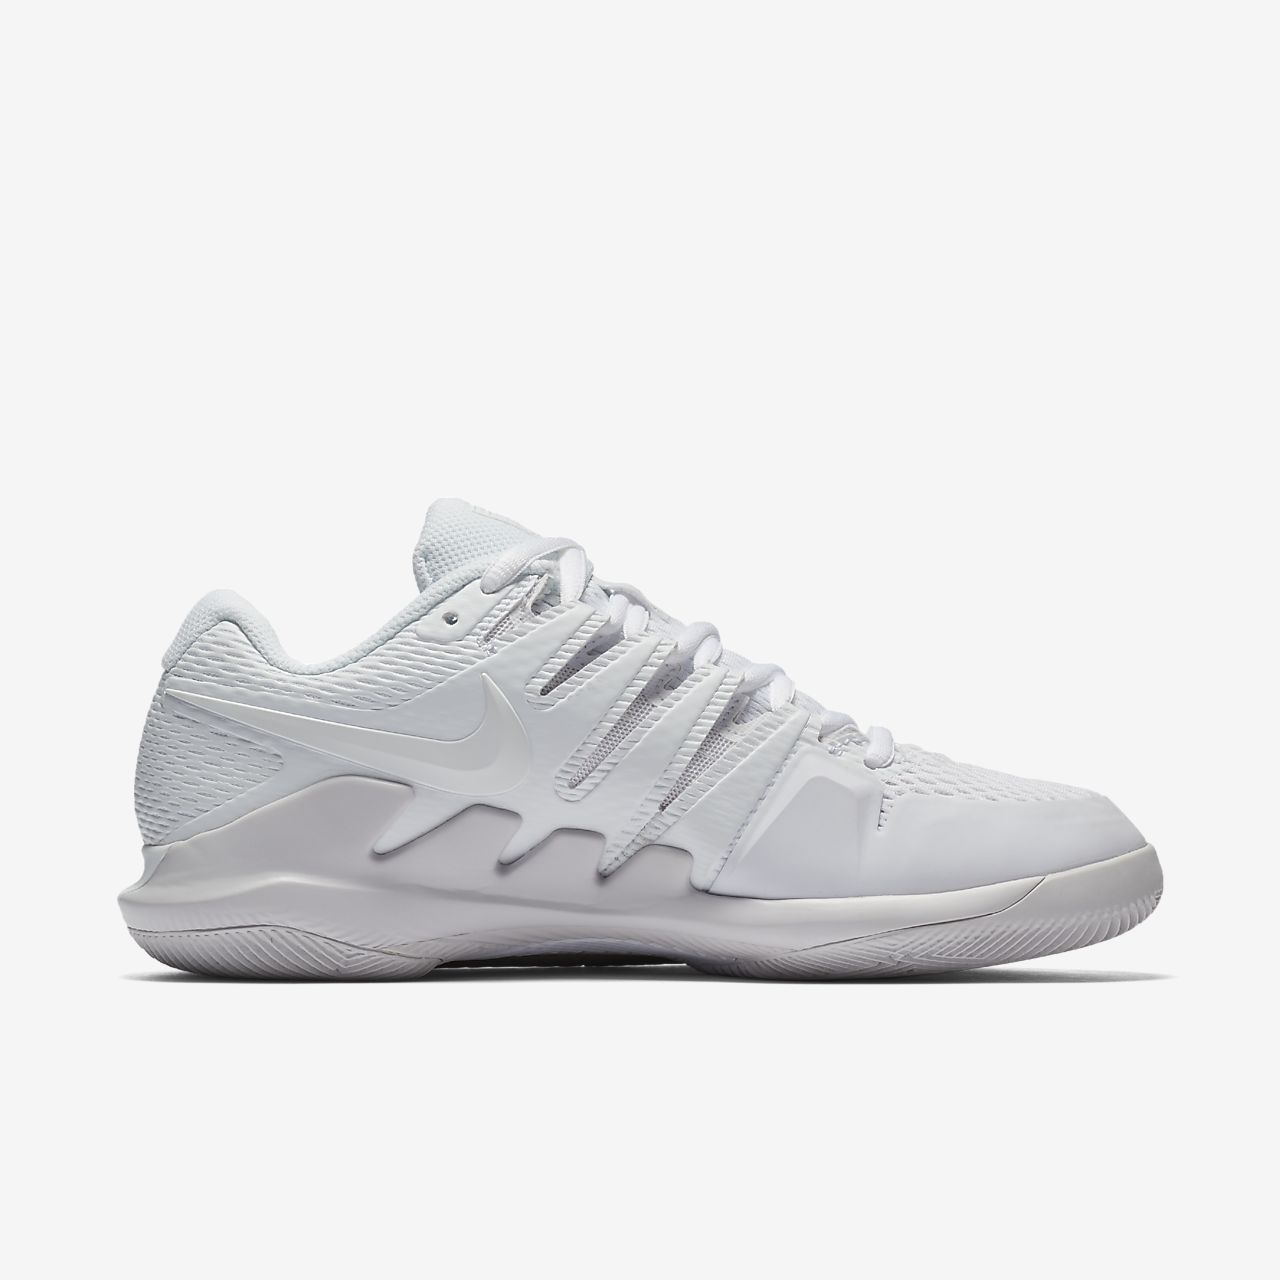 sports shoes d279e d5dff ... NikeCourt Air Zoom Vapor X Women s Hard Court Tennis Shoe